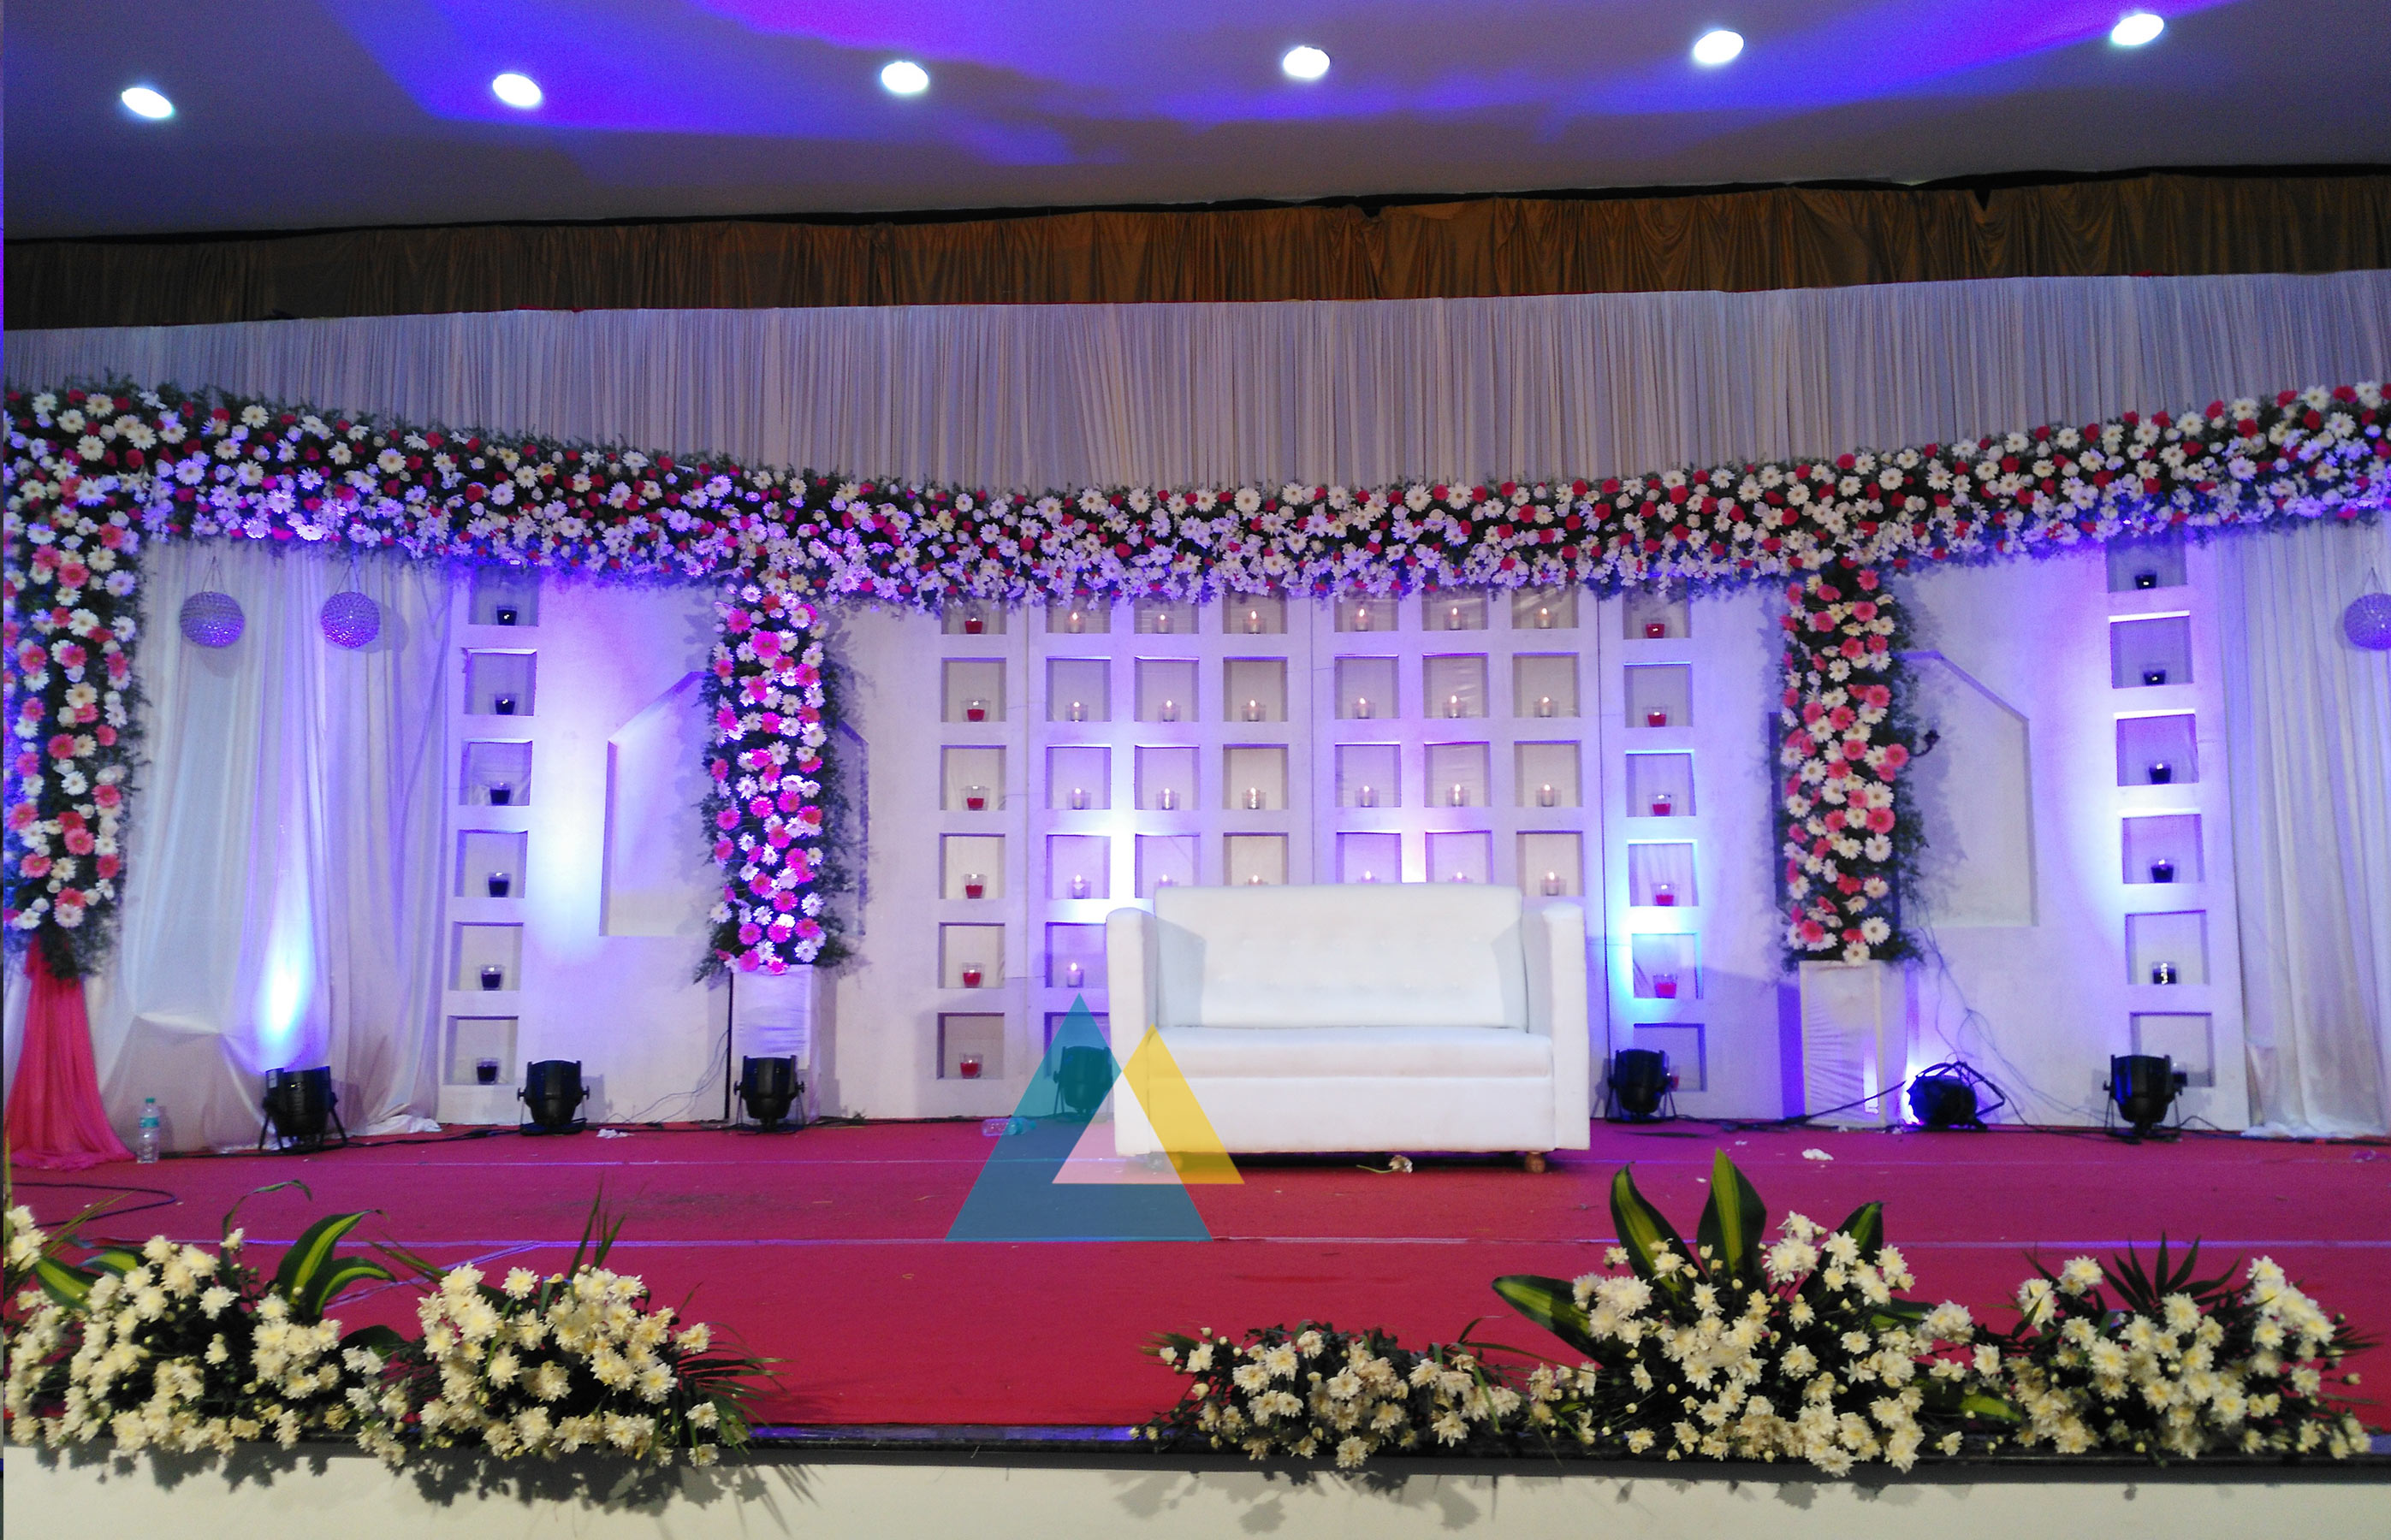 Wedding reception decoration done at bkn auditorium for New wedding decoration ideas